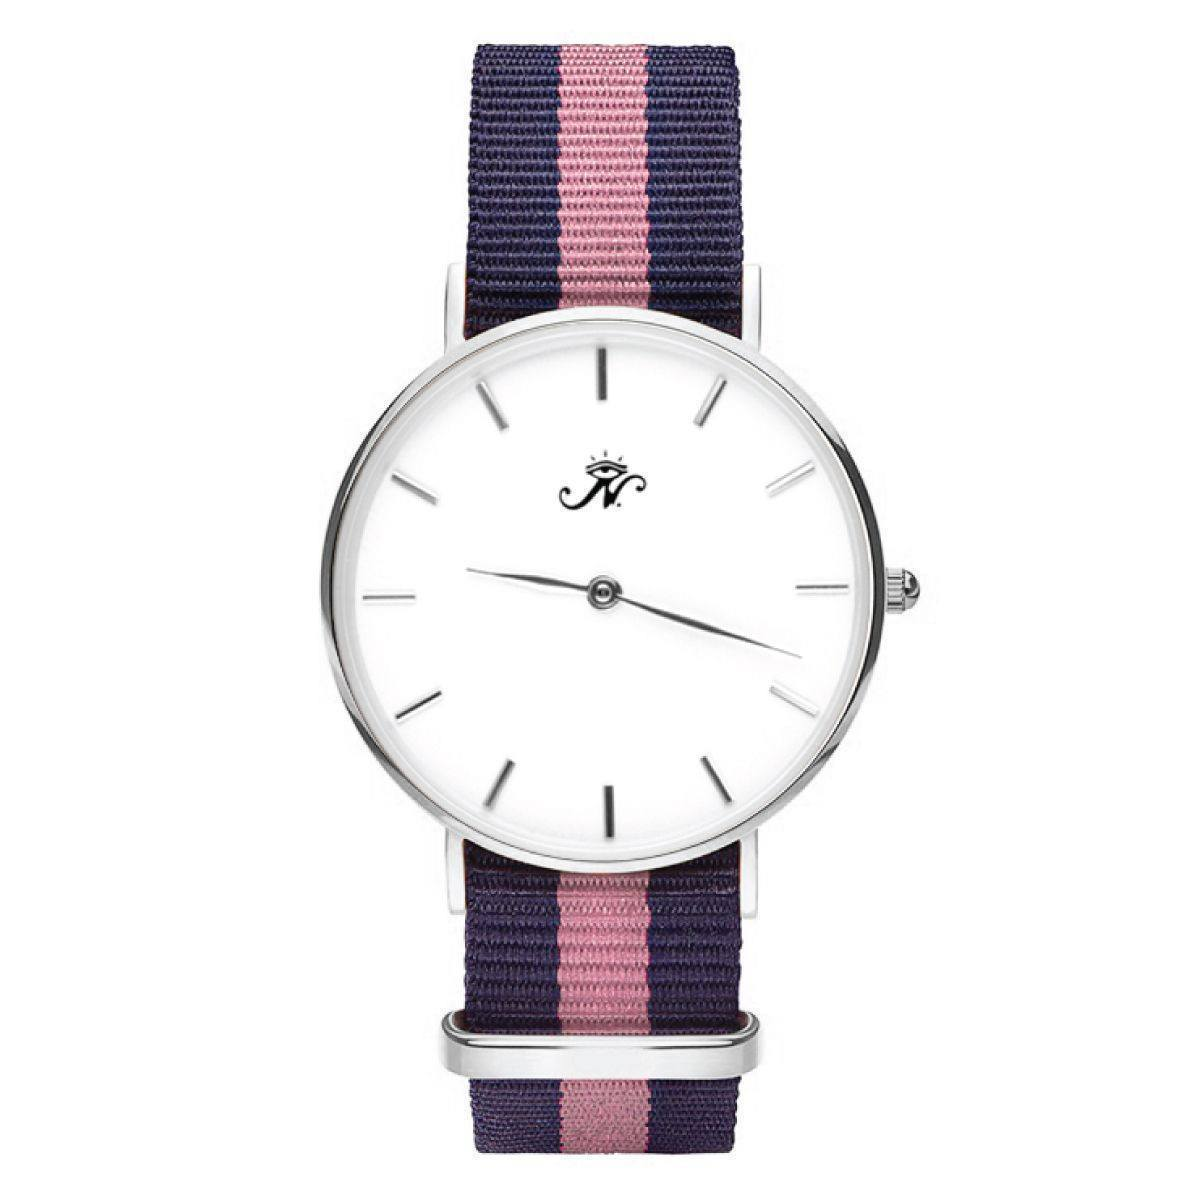 Rosedale - Silver Timepiece with NATO Strap